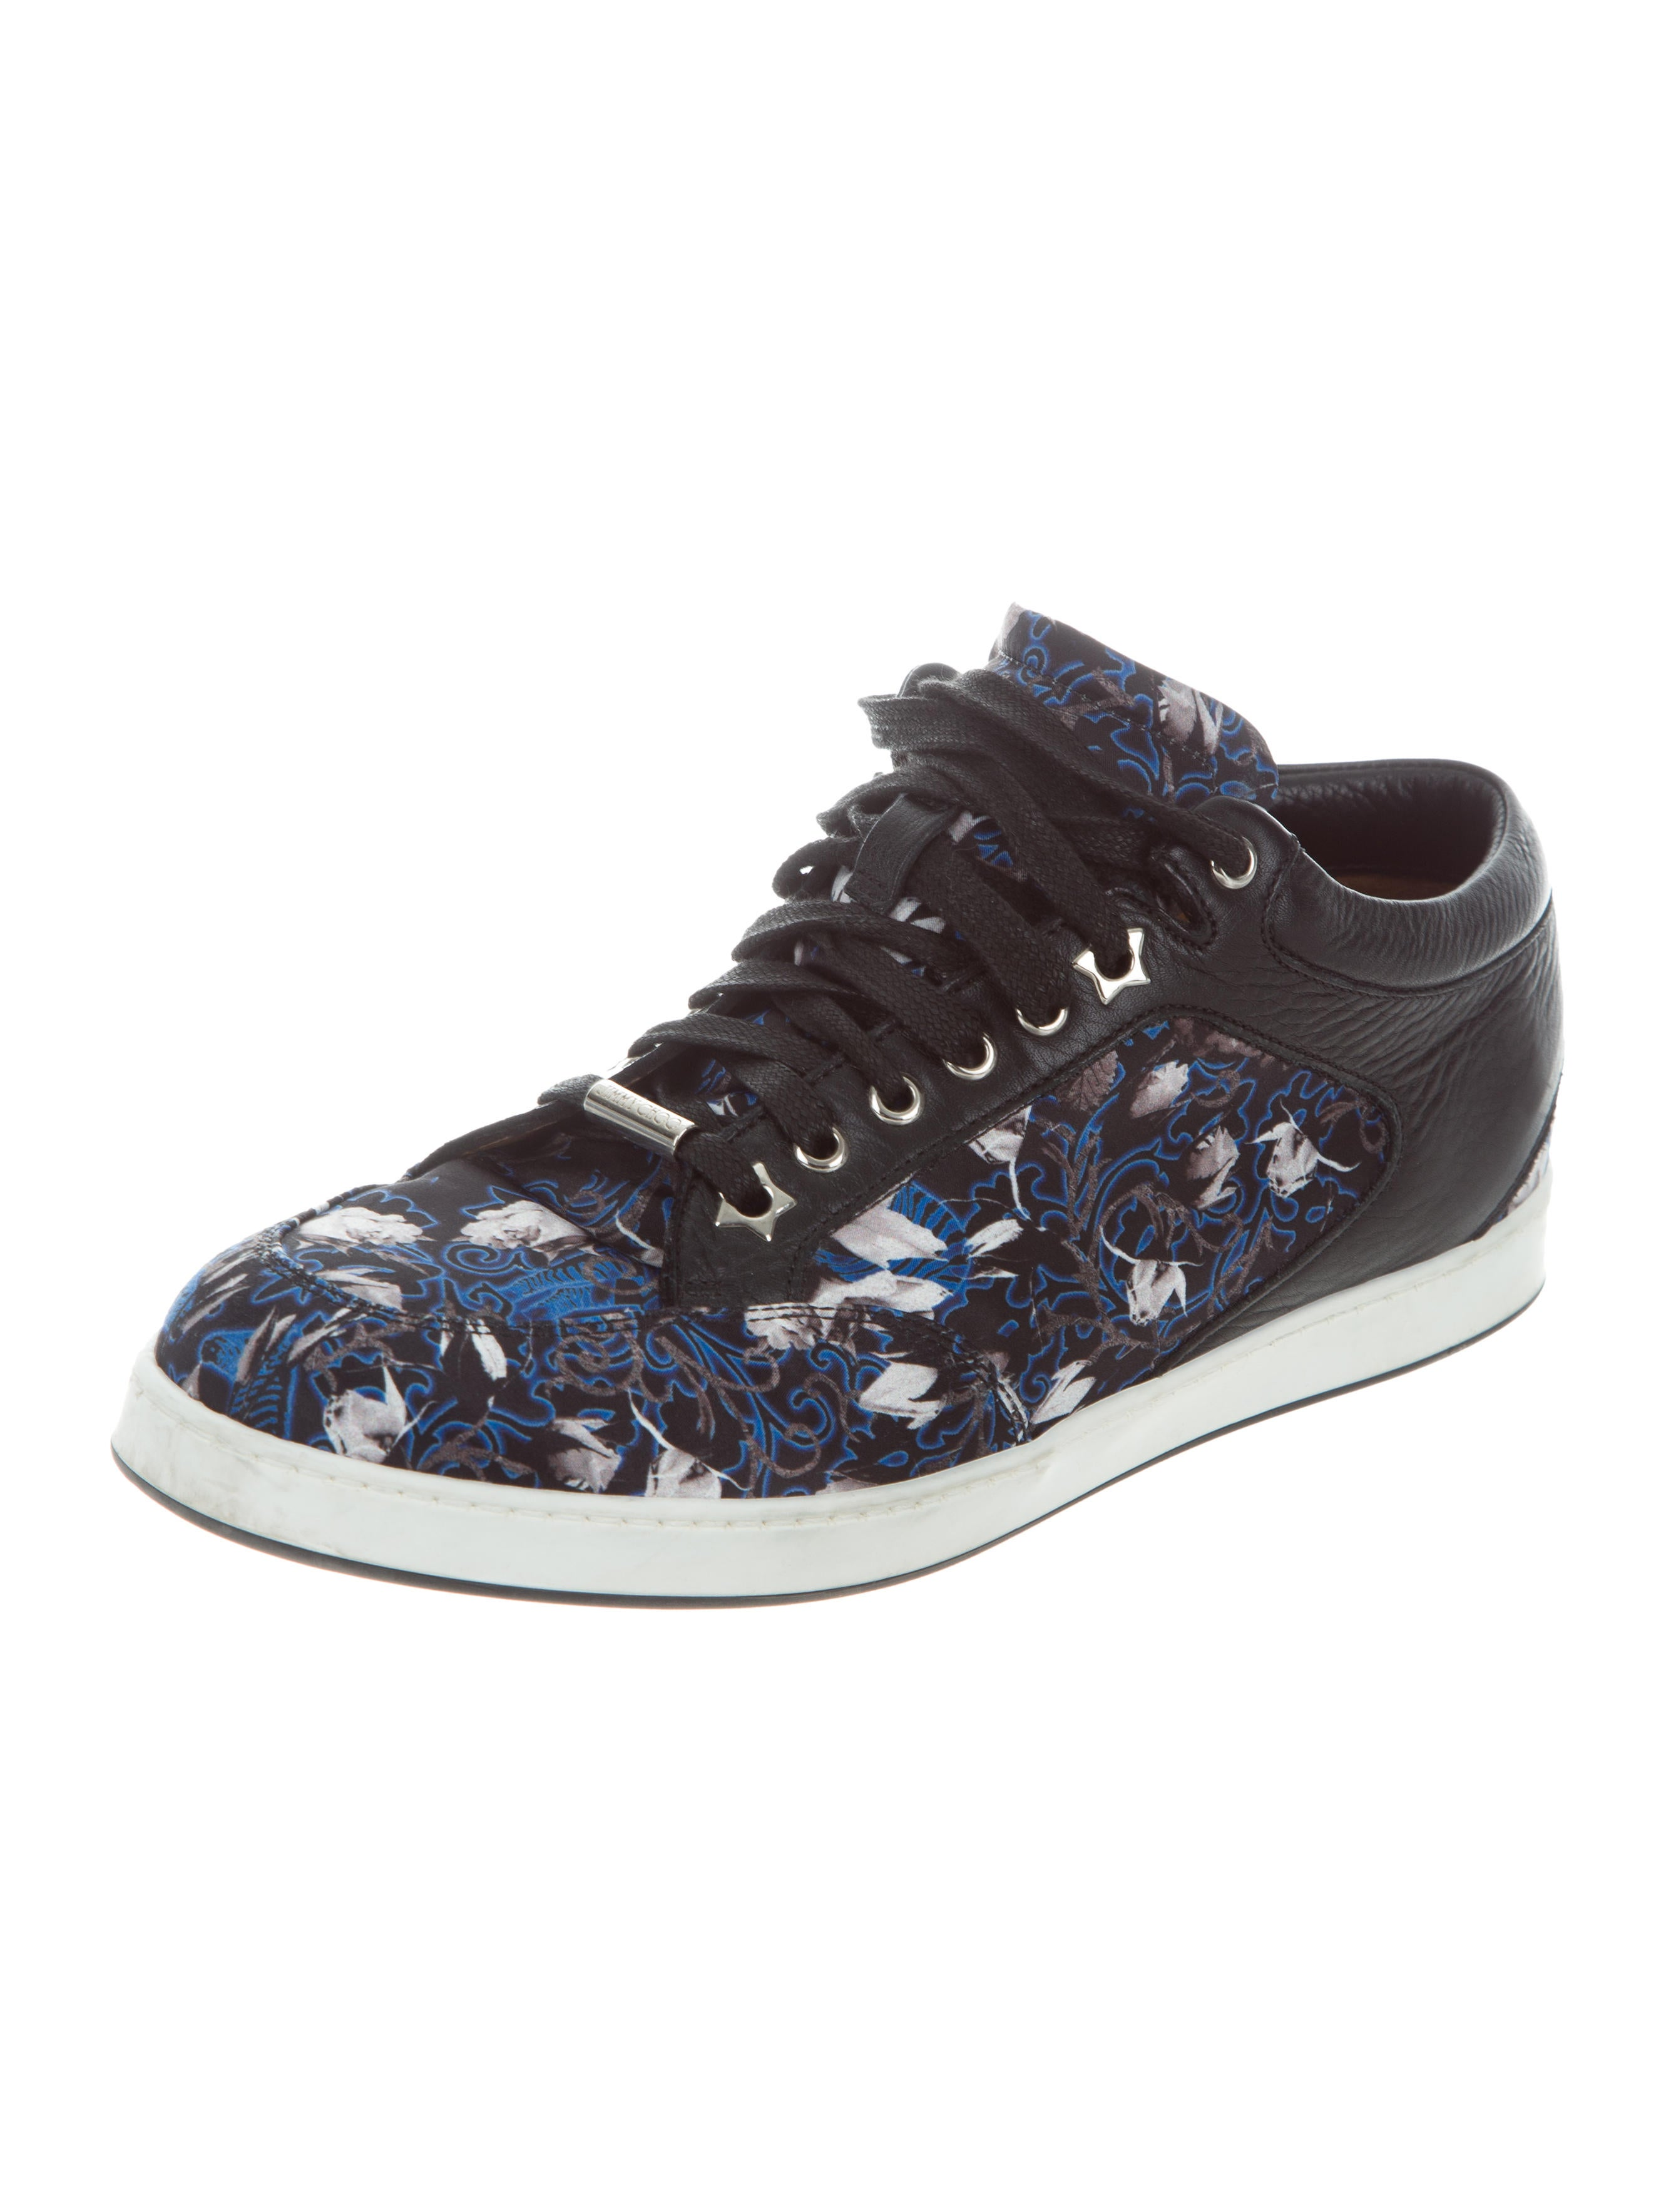 jimmy choo printed satin sneakers shoes jim70359 the realreal. Black Bedroom Furniture Sets. Home Design Ideas